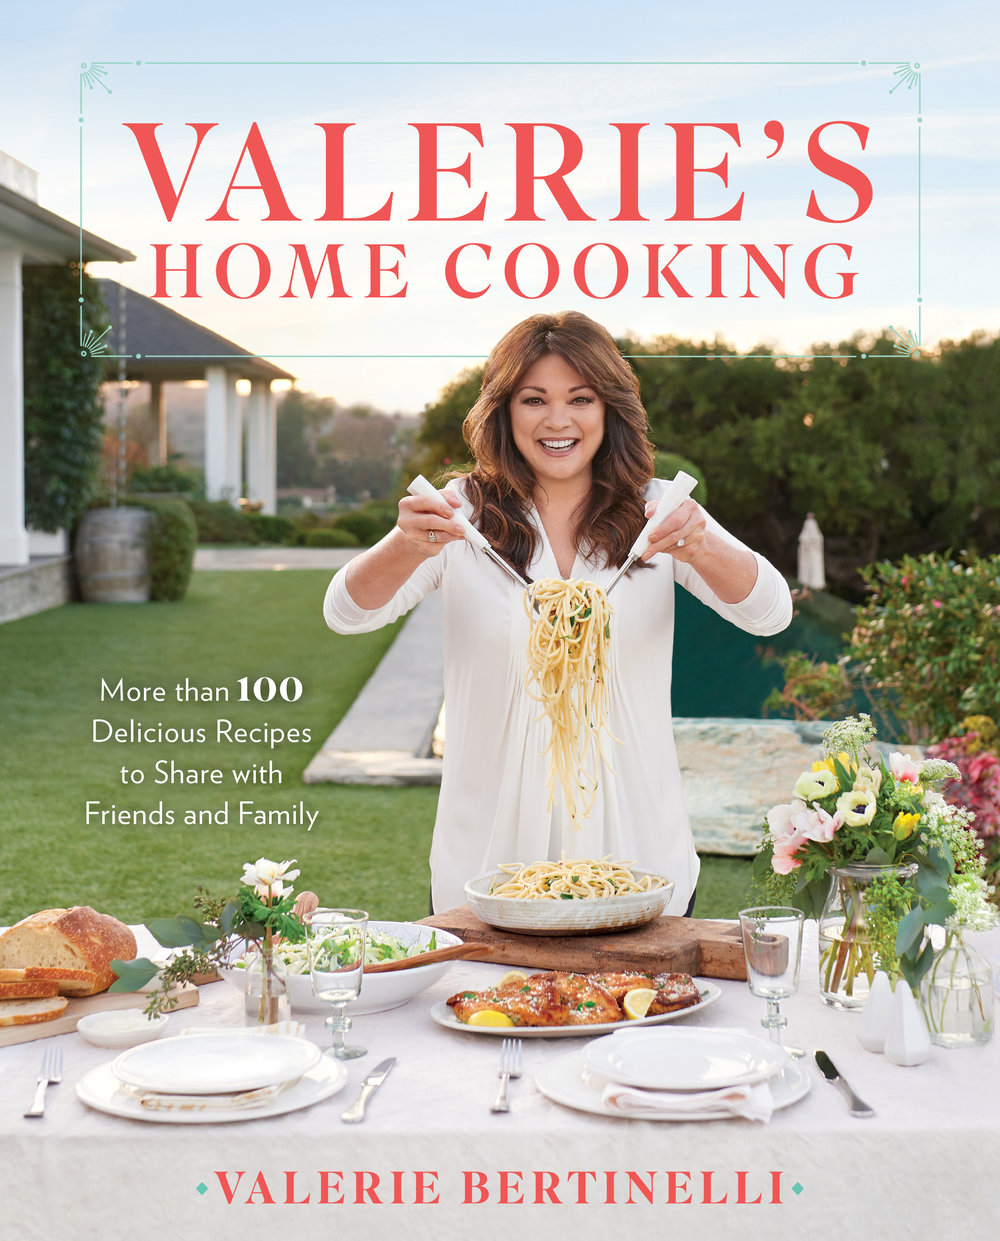 Valerie's Home Cooking cookbook by Valerie Bertinelli